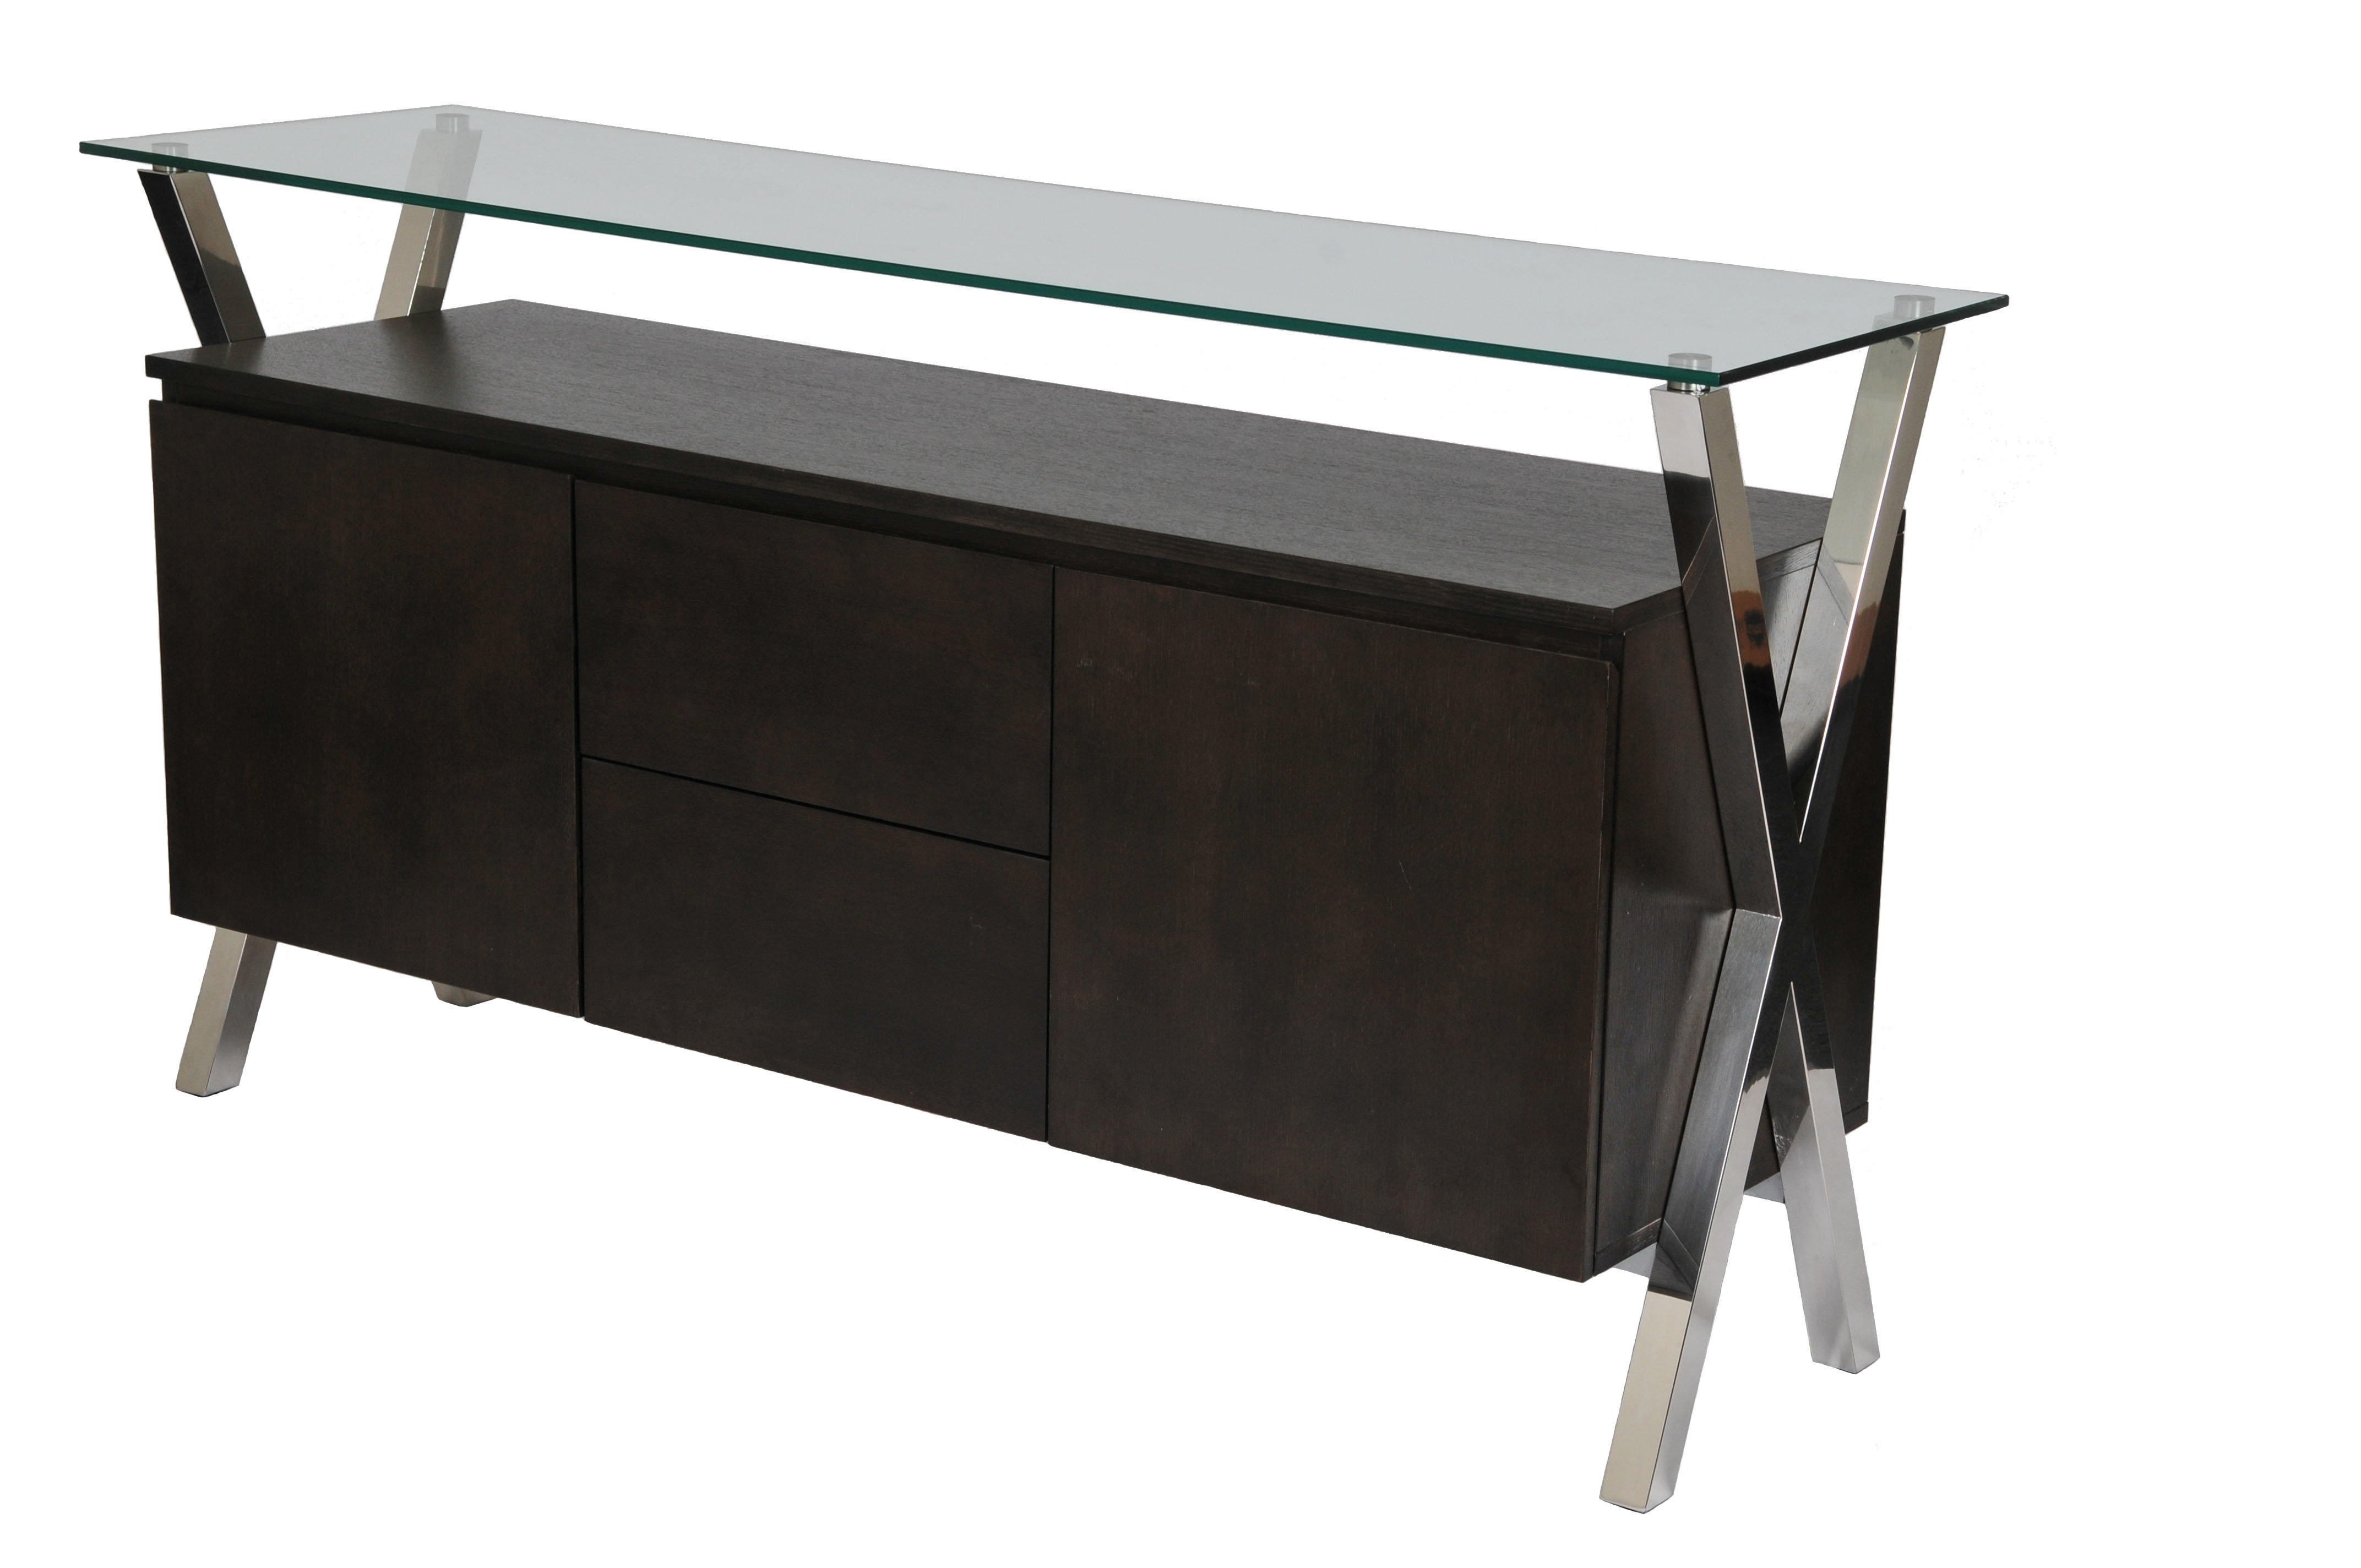 Modern & Contemporary High Gloss White Buffet | Allmodern Within Mid Century Modern Glossy White Buffets (View 11 of 30)